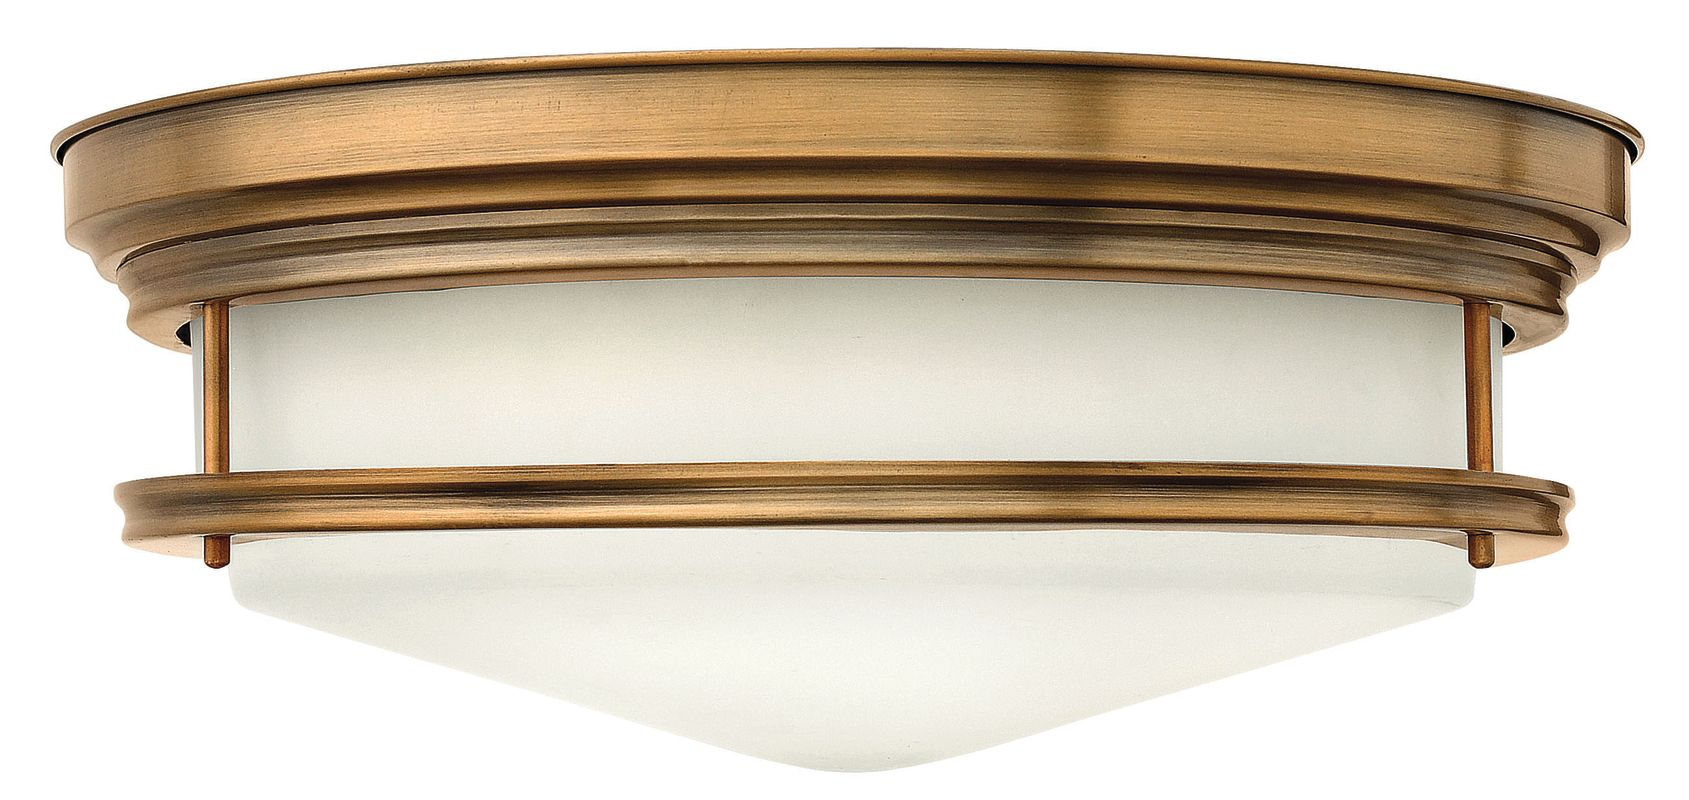 Hinkley Lighting 3304-GU24 4 Light Title 24 Fluorescent Flush Mount